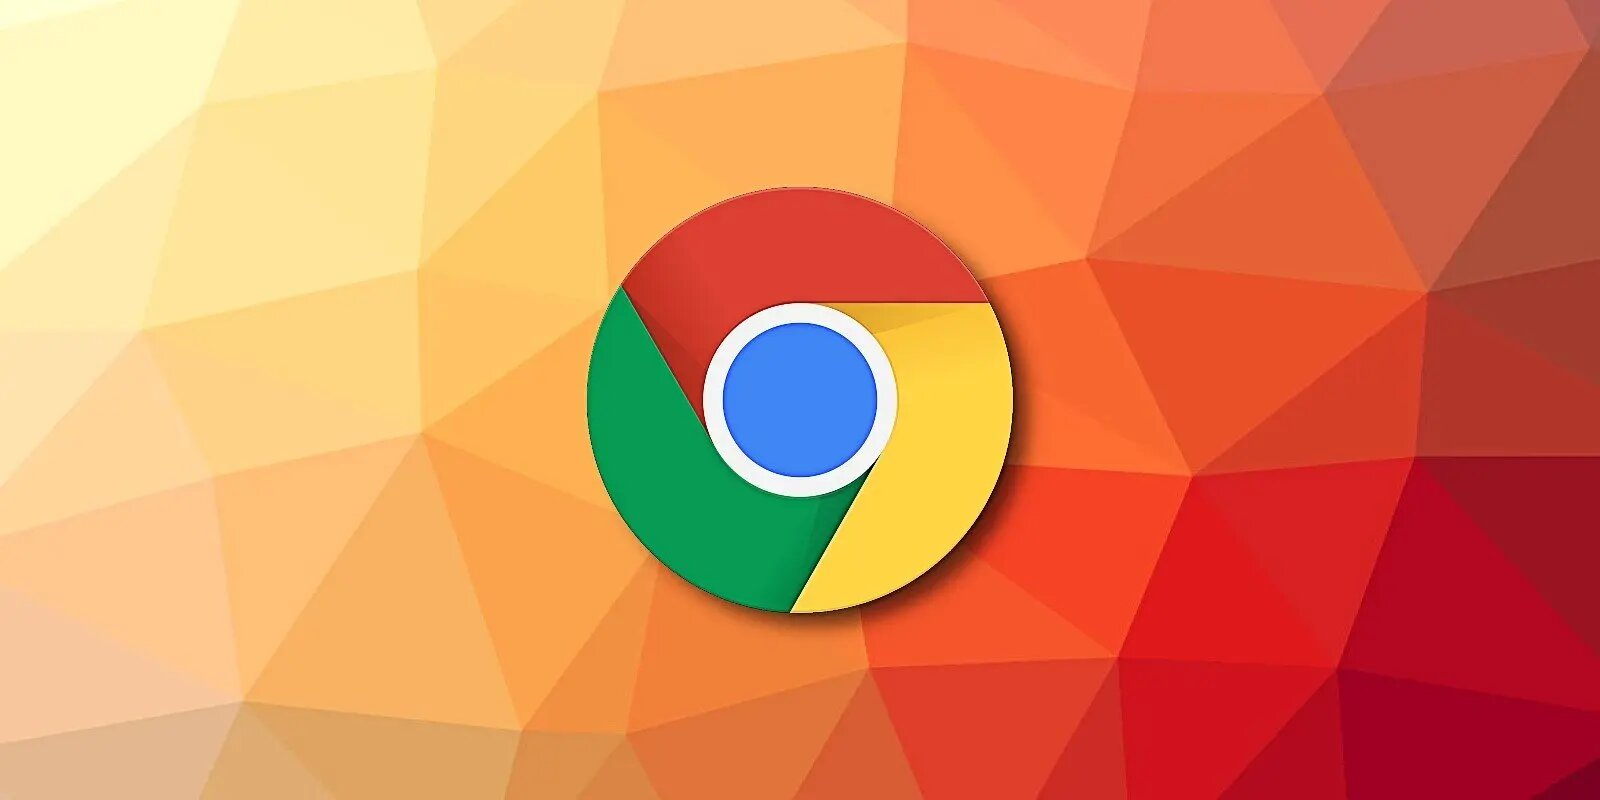 Chrome - Chrome PartitionAlloc for reduced RAM usage